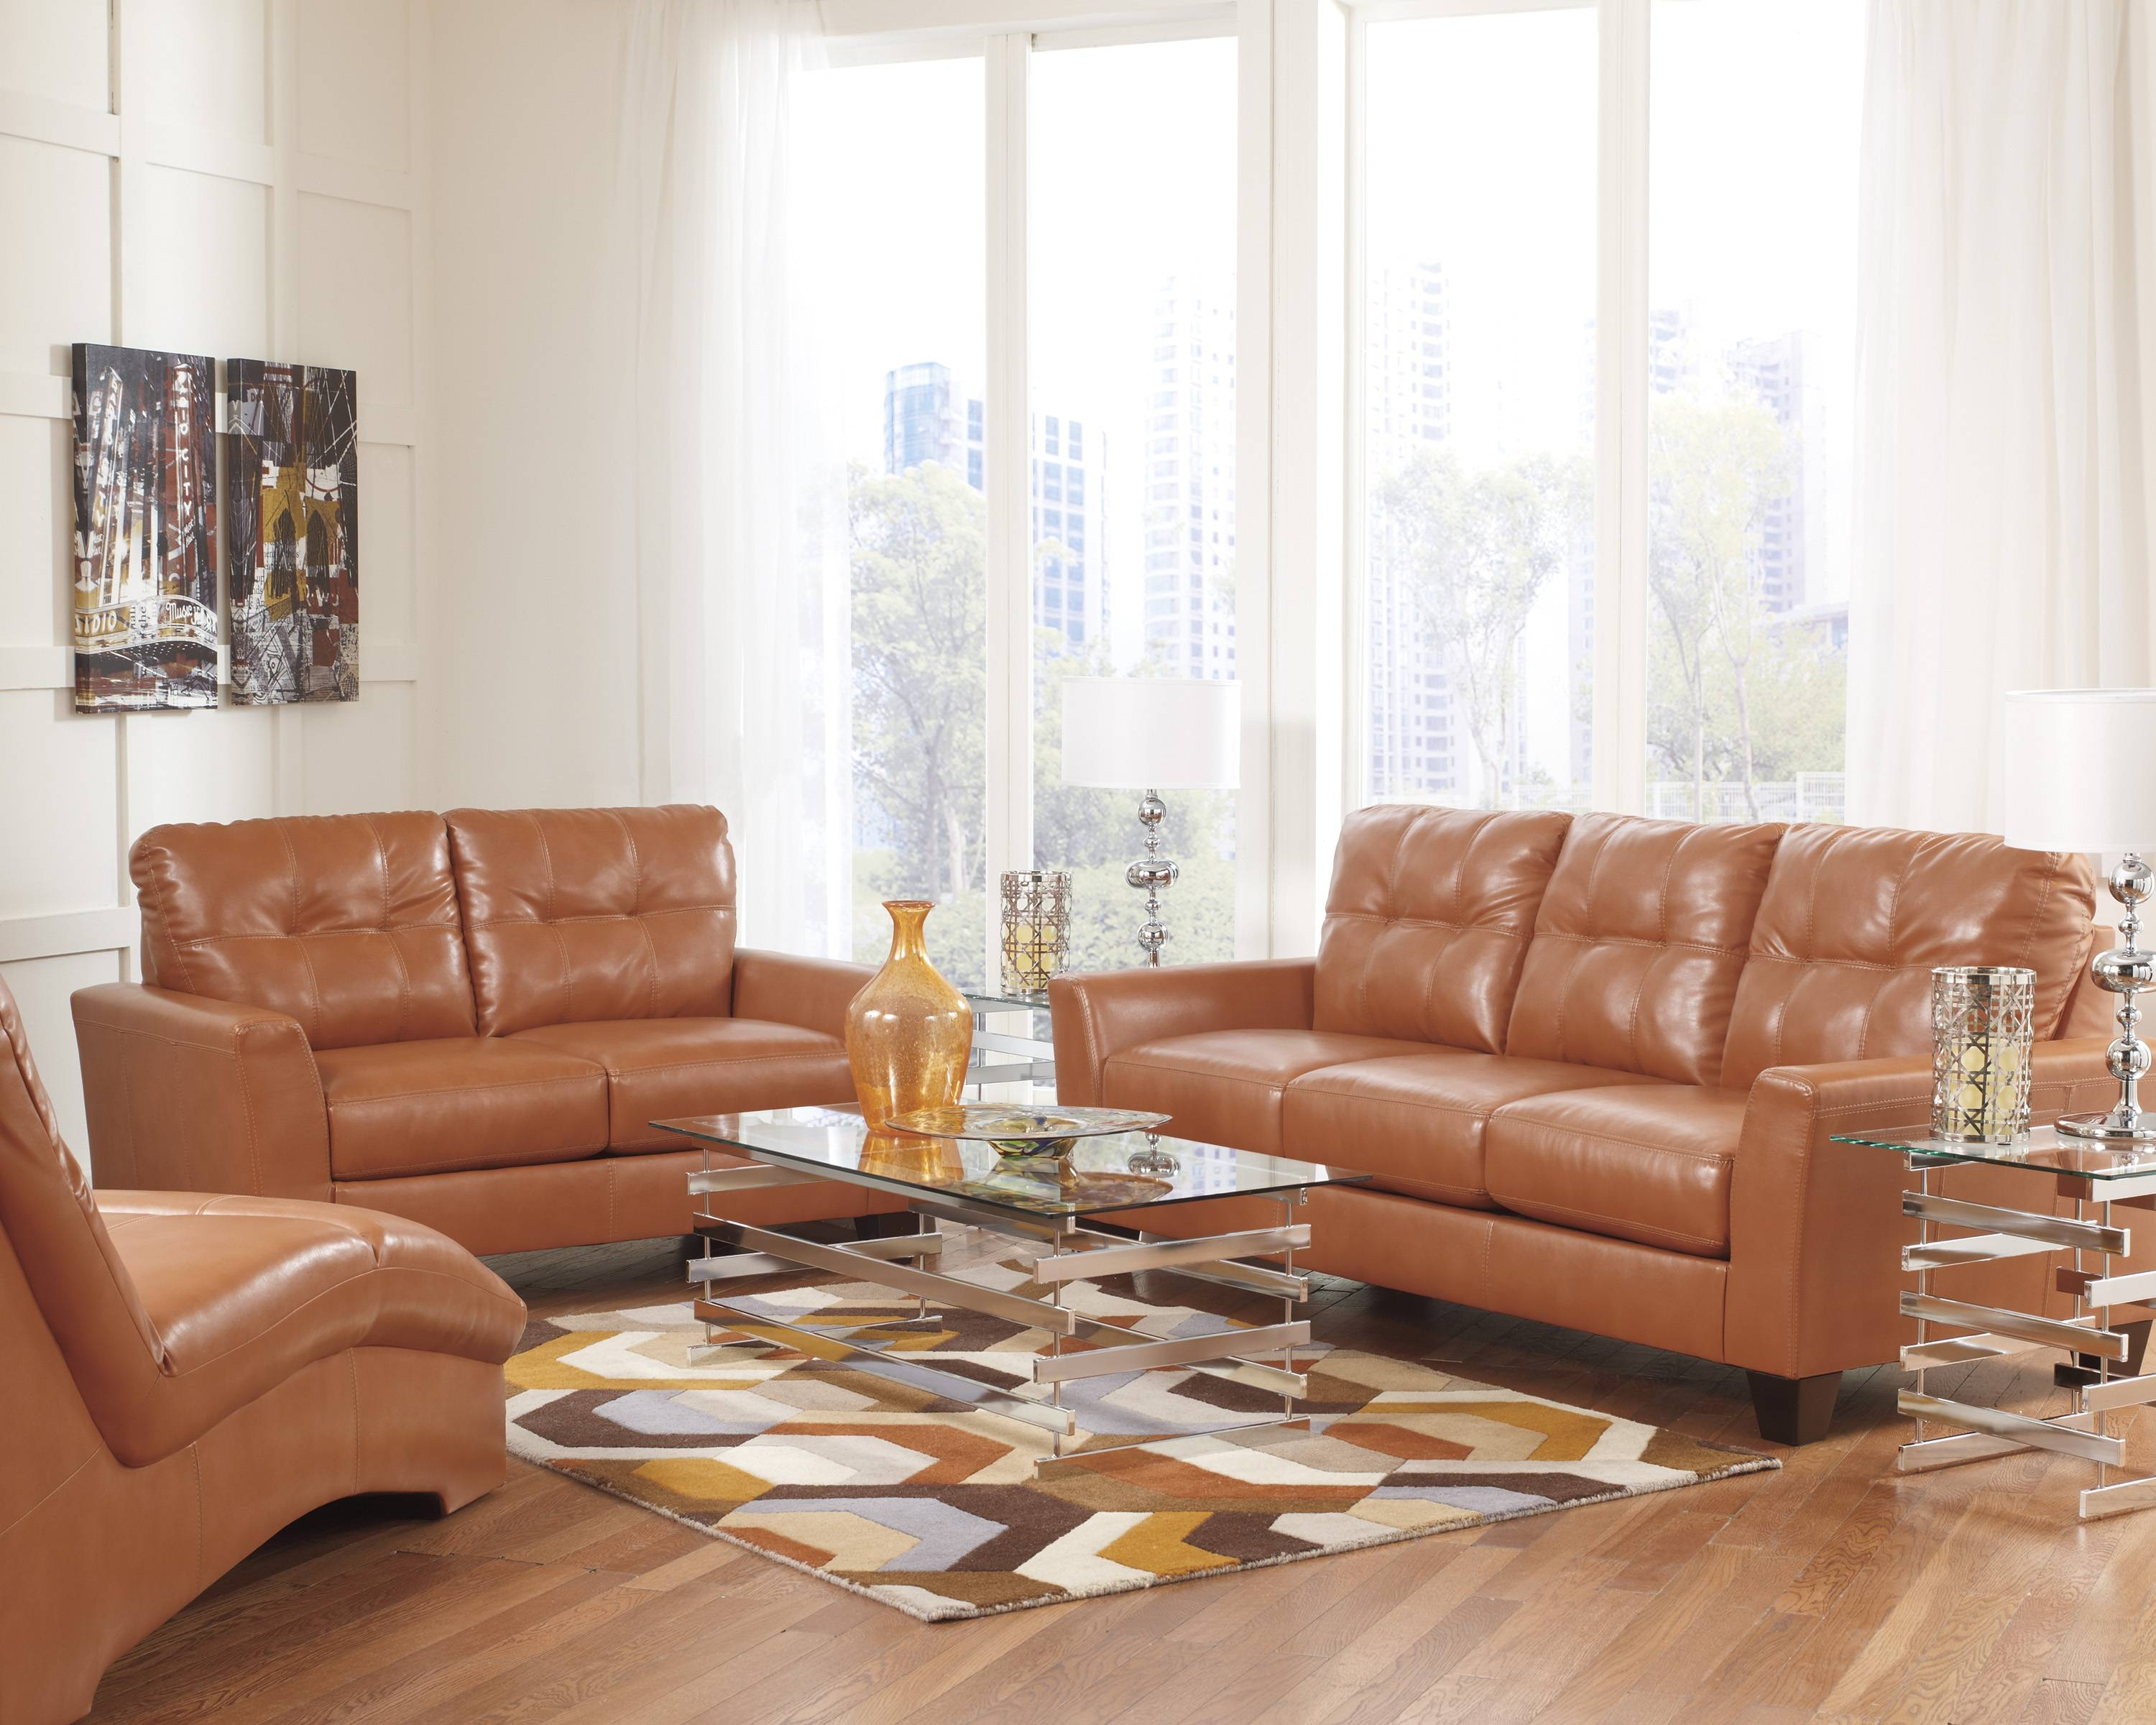 Burnt Orange Leather Sofa Trieste Living Room Collection. Living for Burnt Orange Leather Sofas (Image 6 of 15)